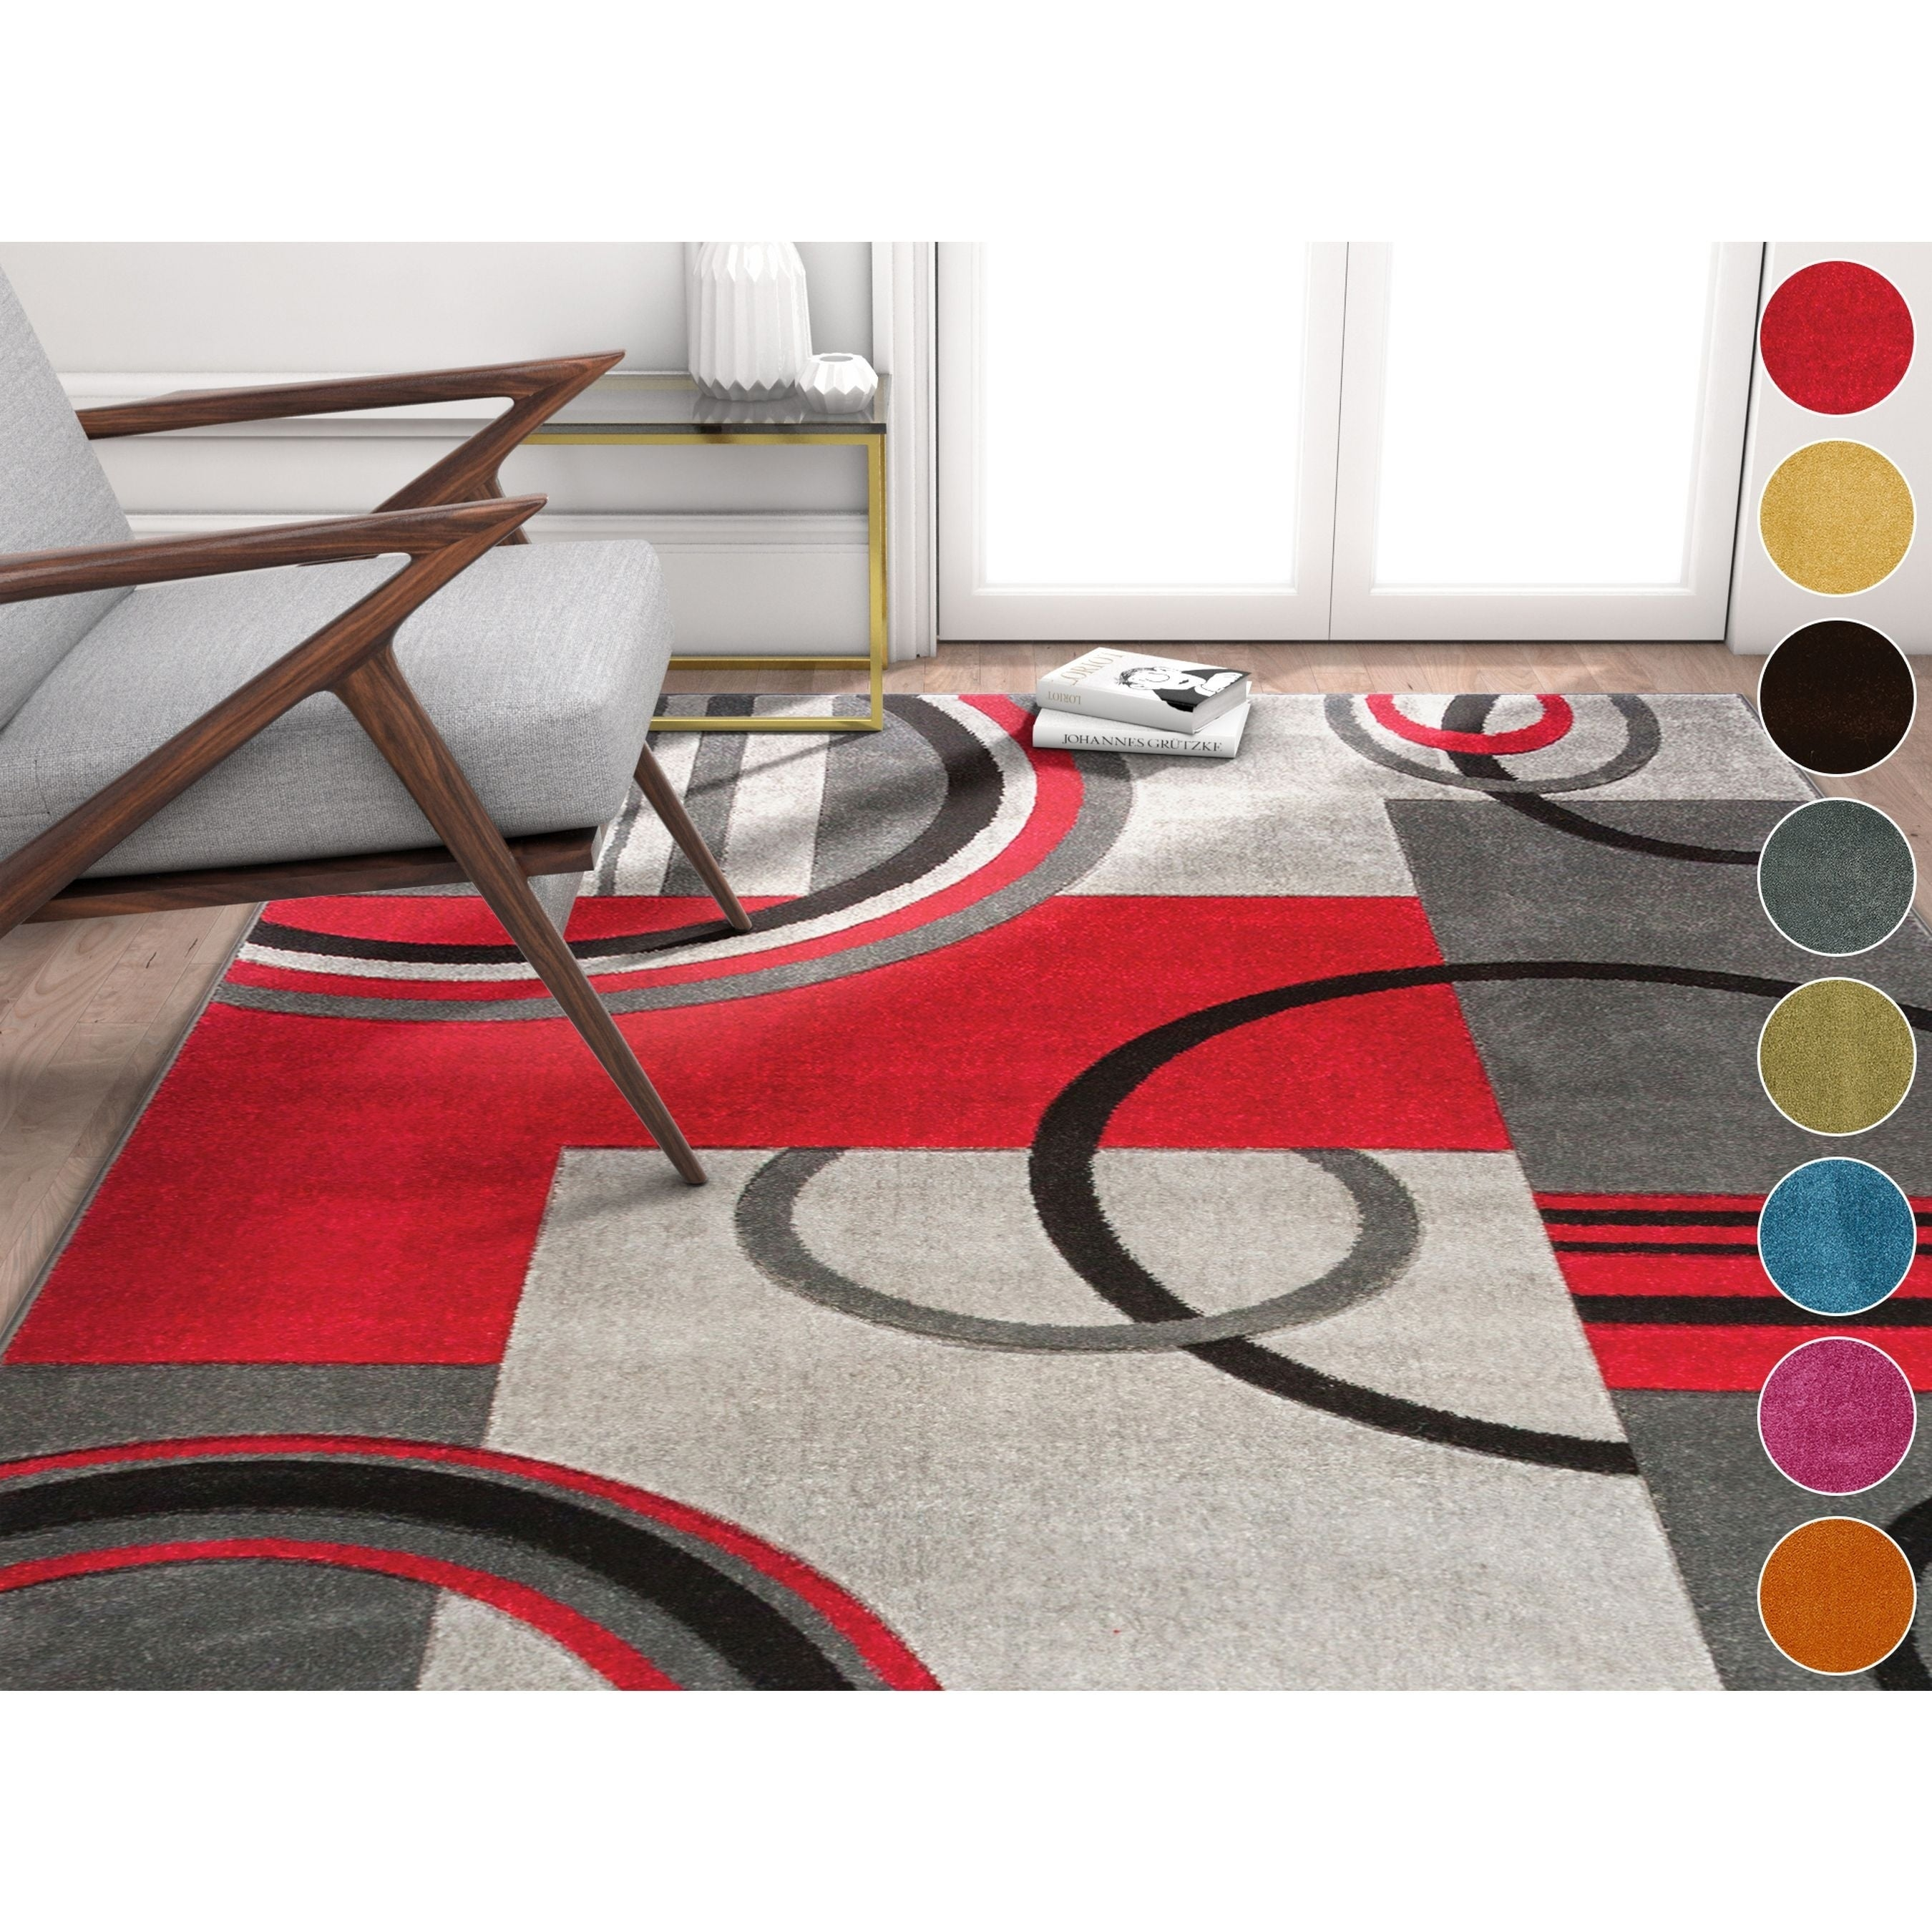 Well Woven Modern Geometric Arcs Shapes Area Rug - 53 x 73 (Orange - White)